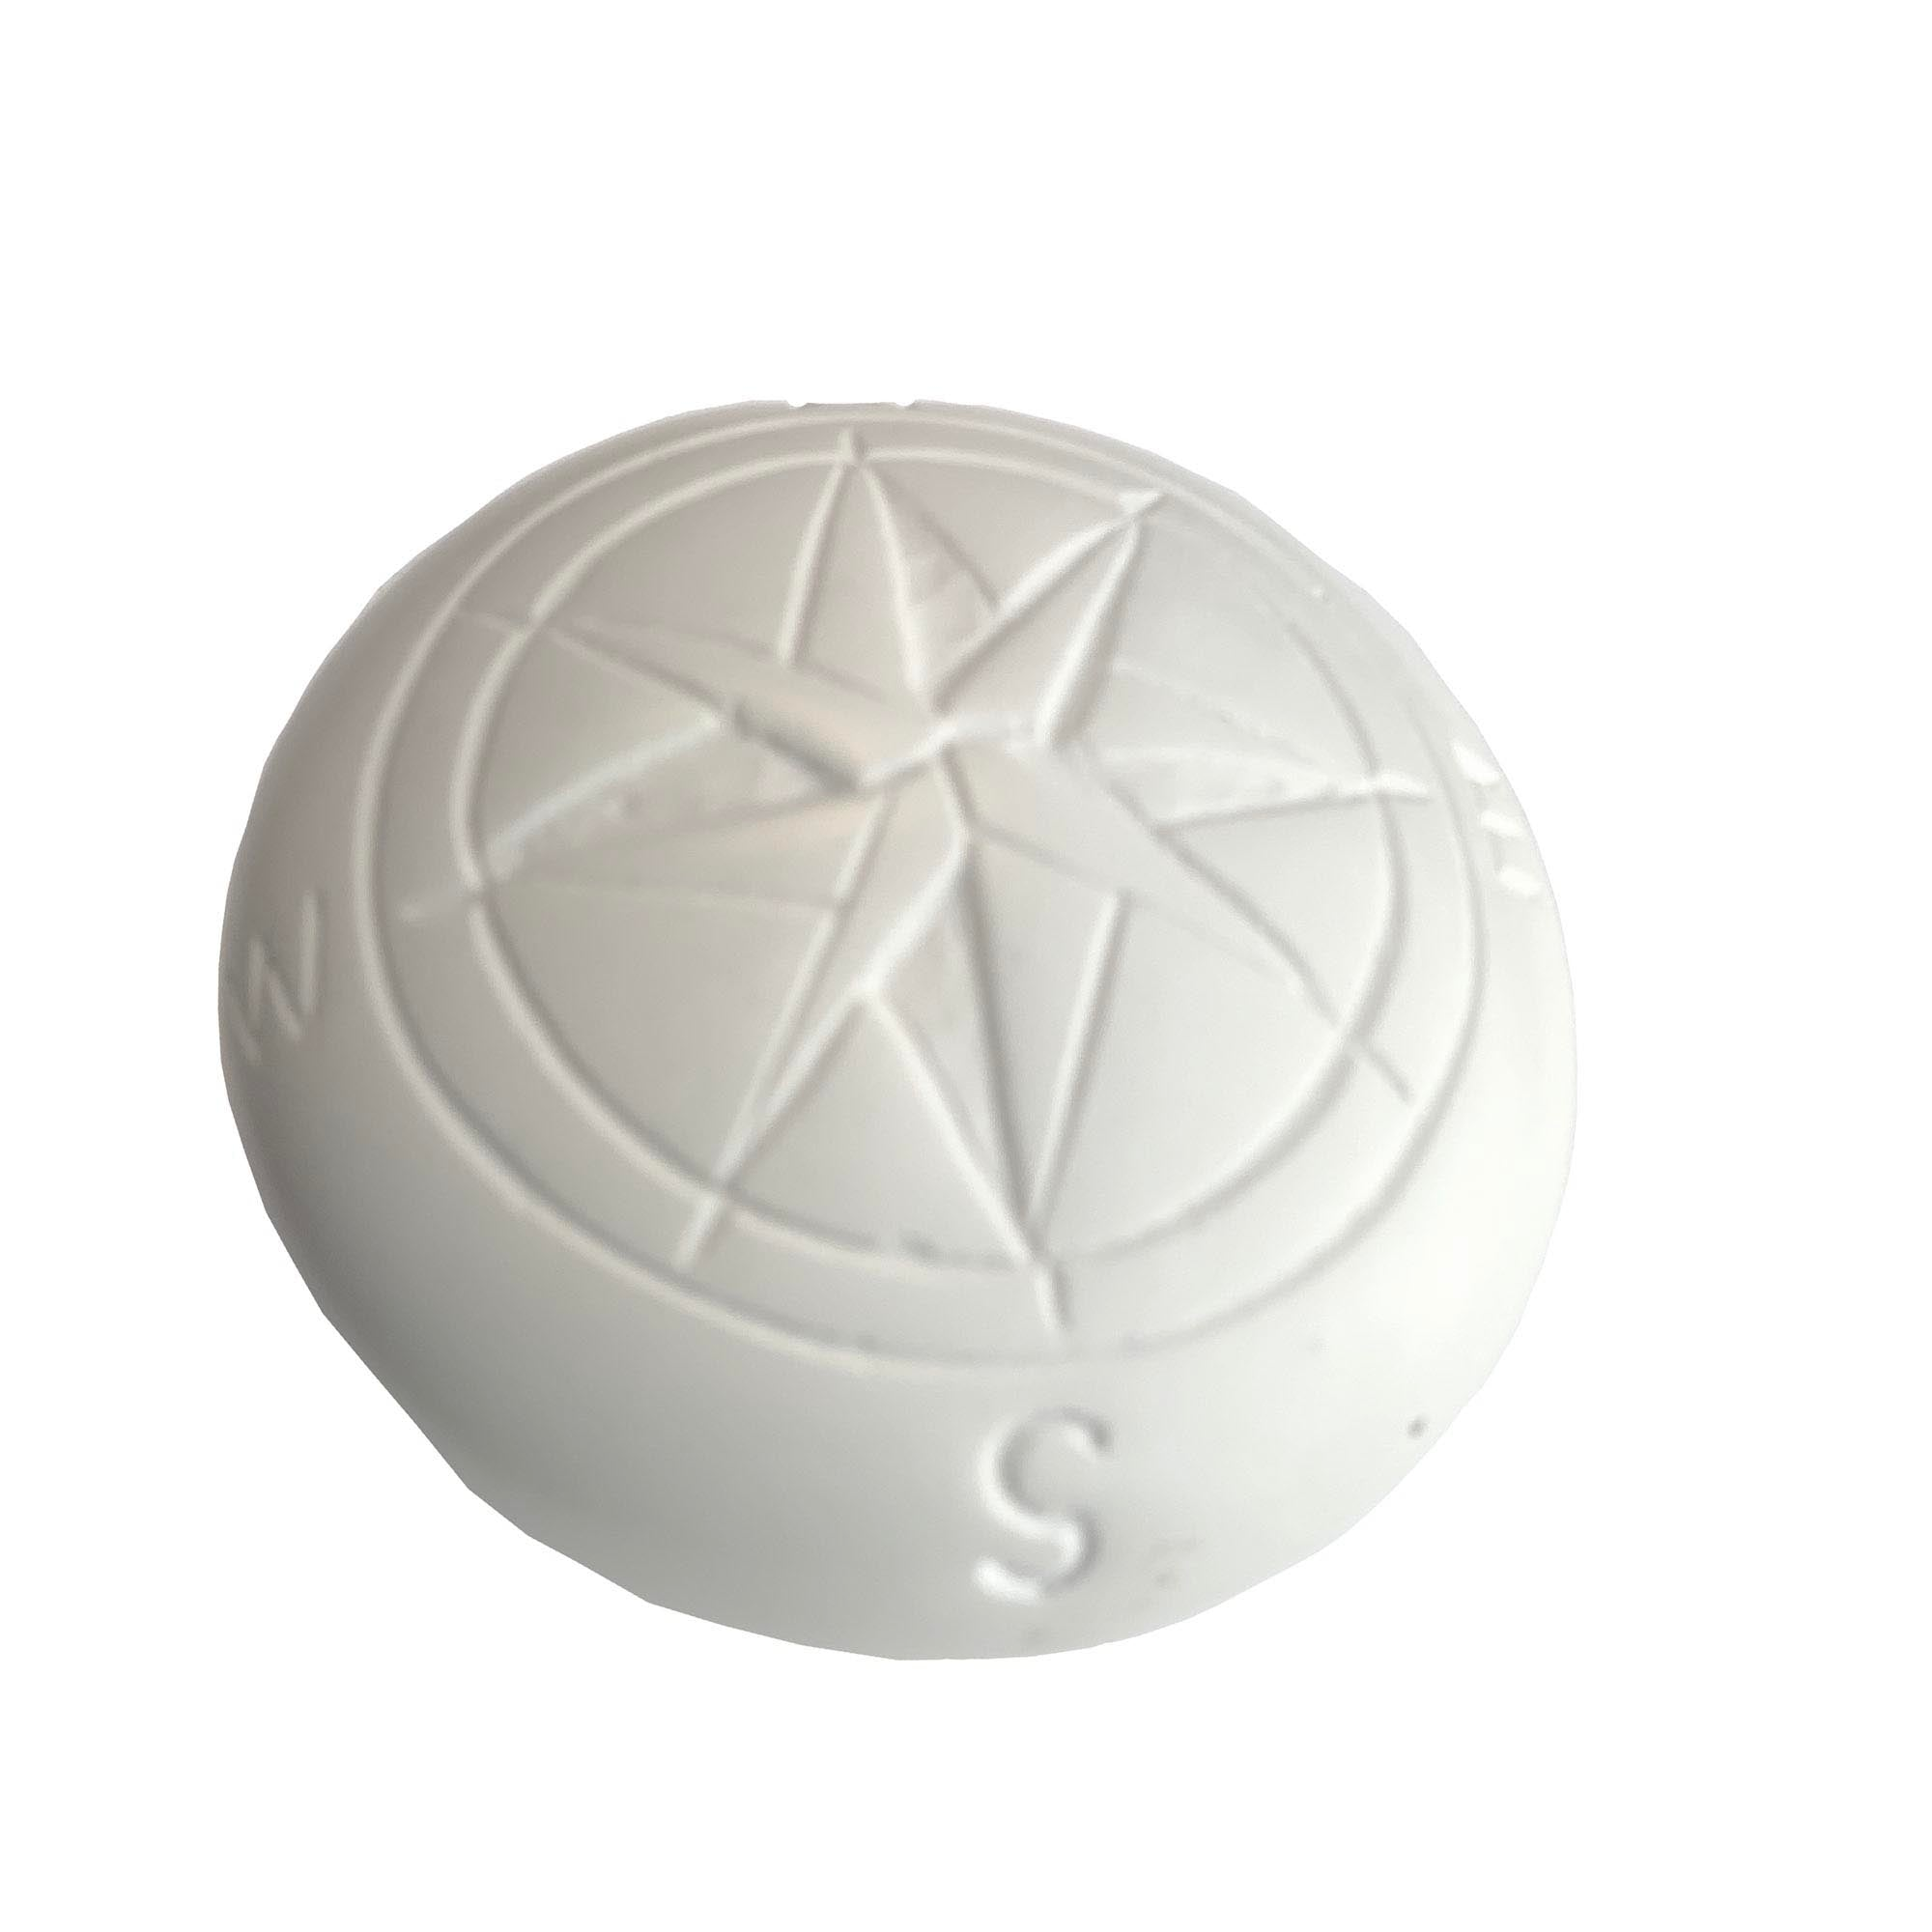 Compass Soapstone Sculpture, Natural Stone